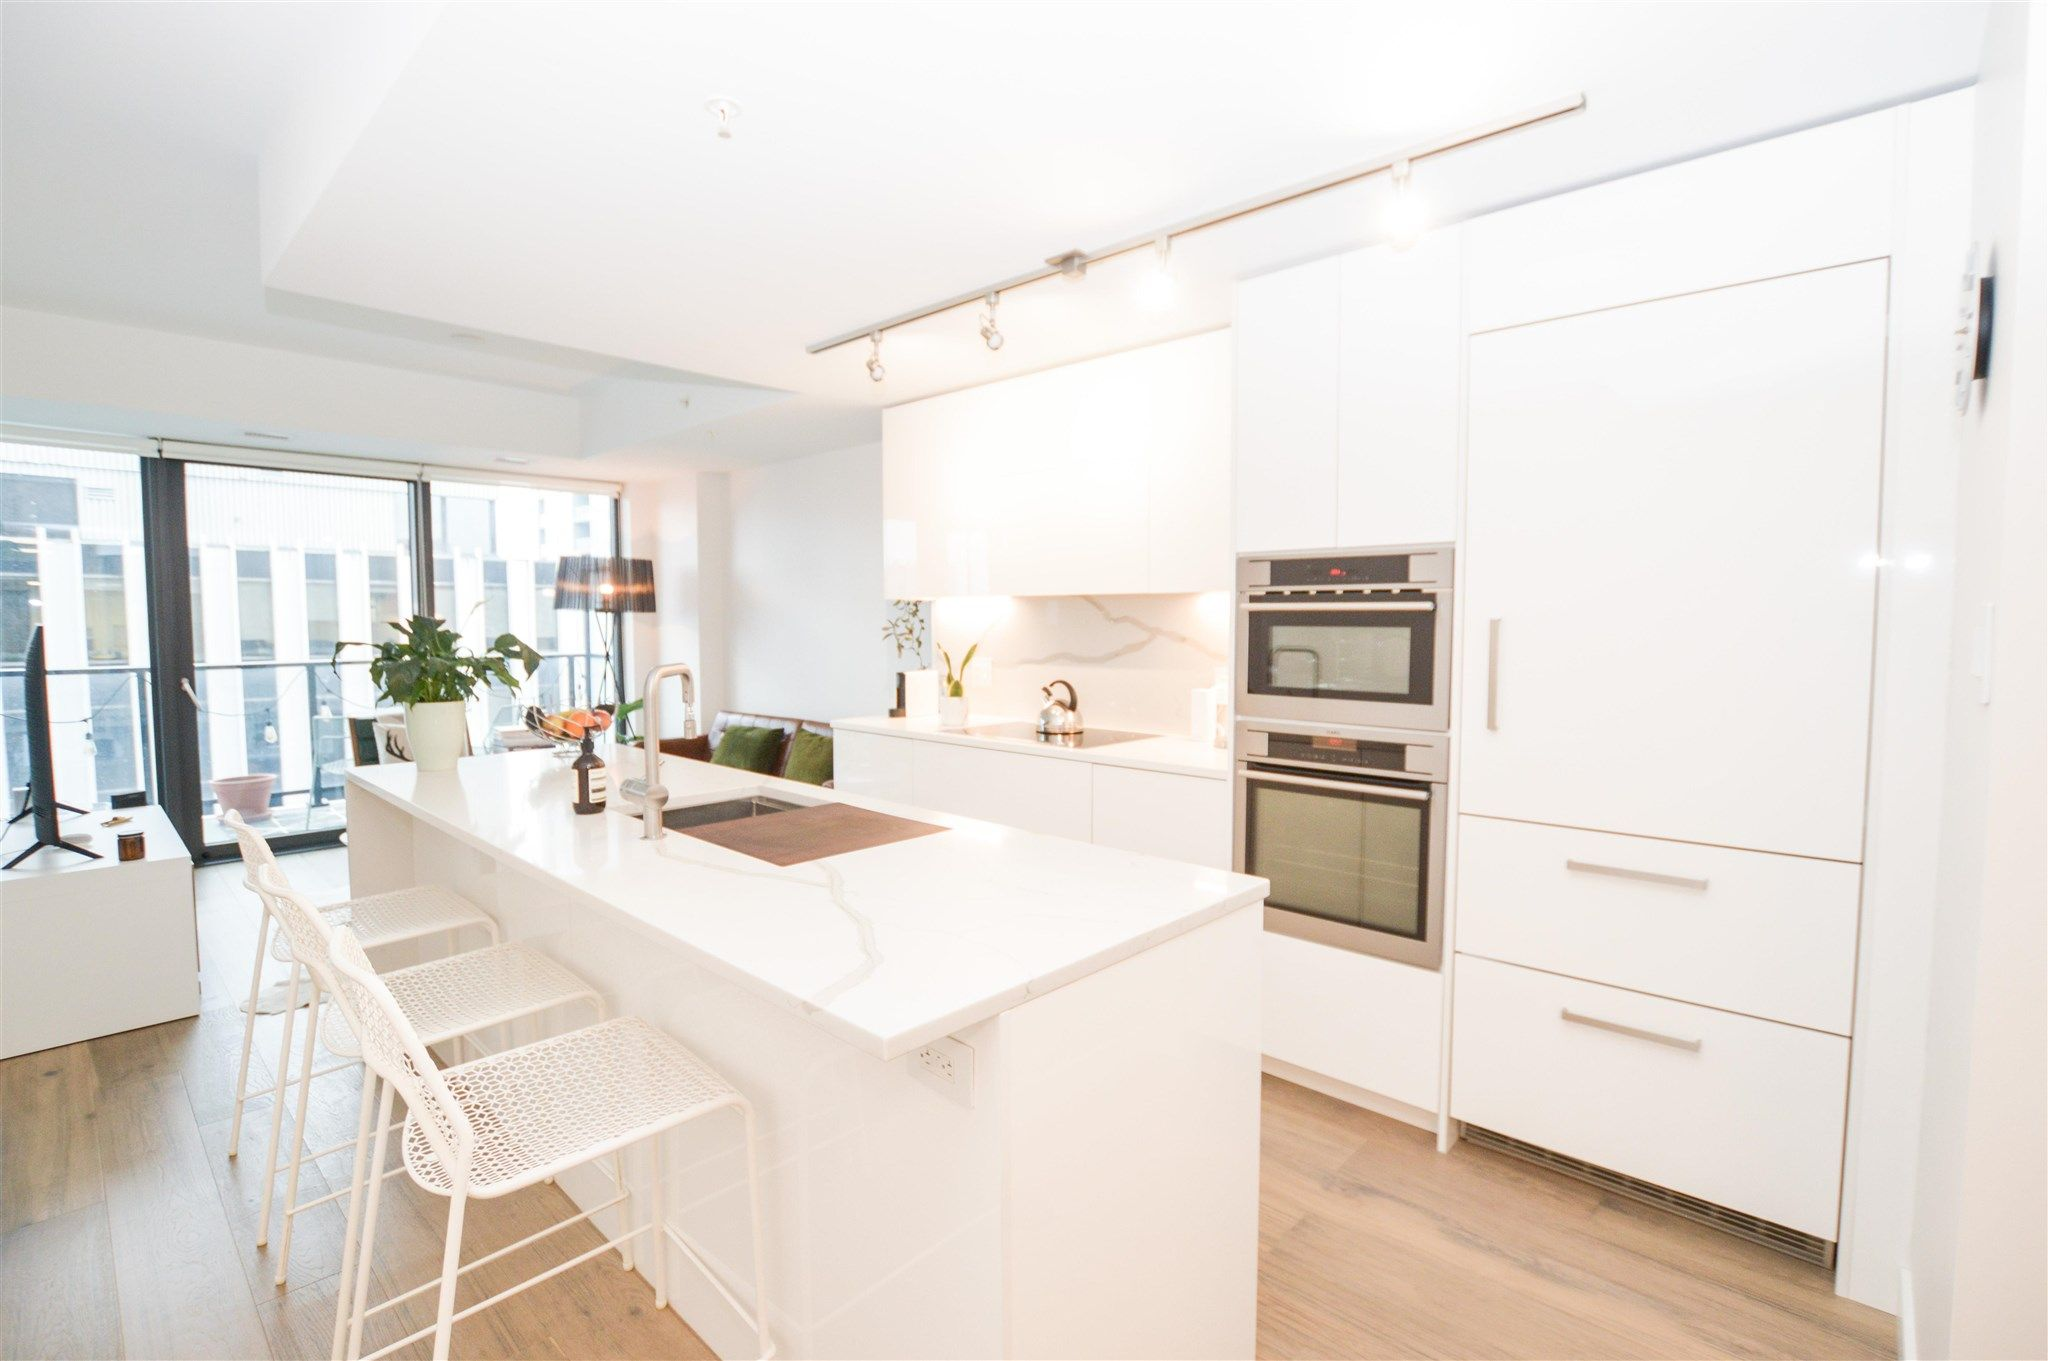 Main Photo: 1109 1650 Granville Street in Halifax: 2-Halifax South Residential for sale (Halifax-Dartmouth)  : MLS®# 202110227